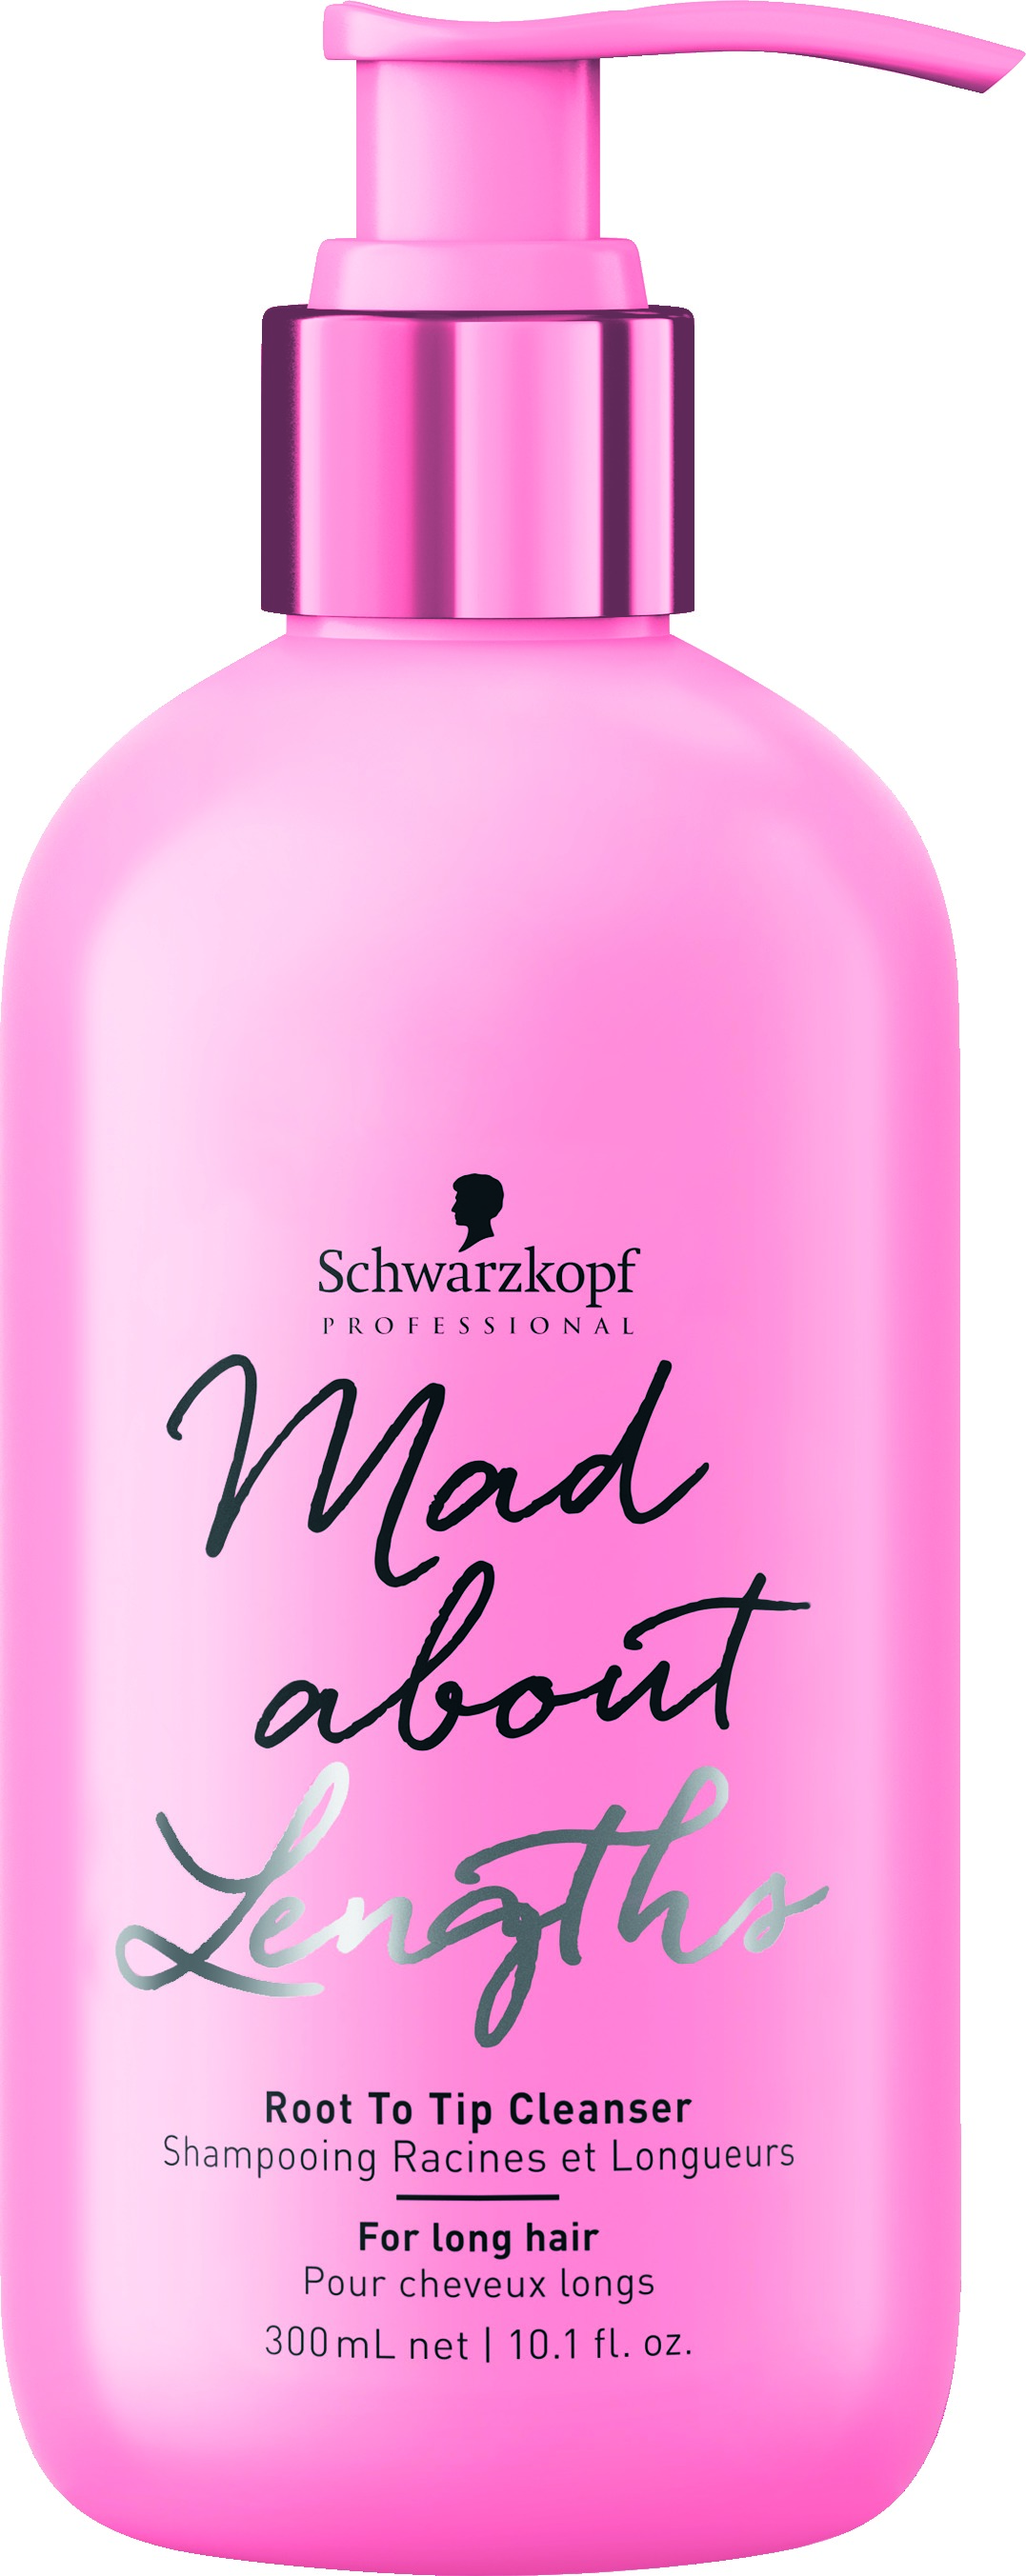 MadAbaout lengths MadAbaout Flasche 300ml Root To Tip Cleanser 02 HR